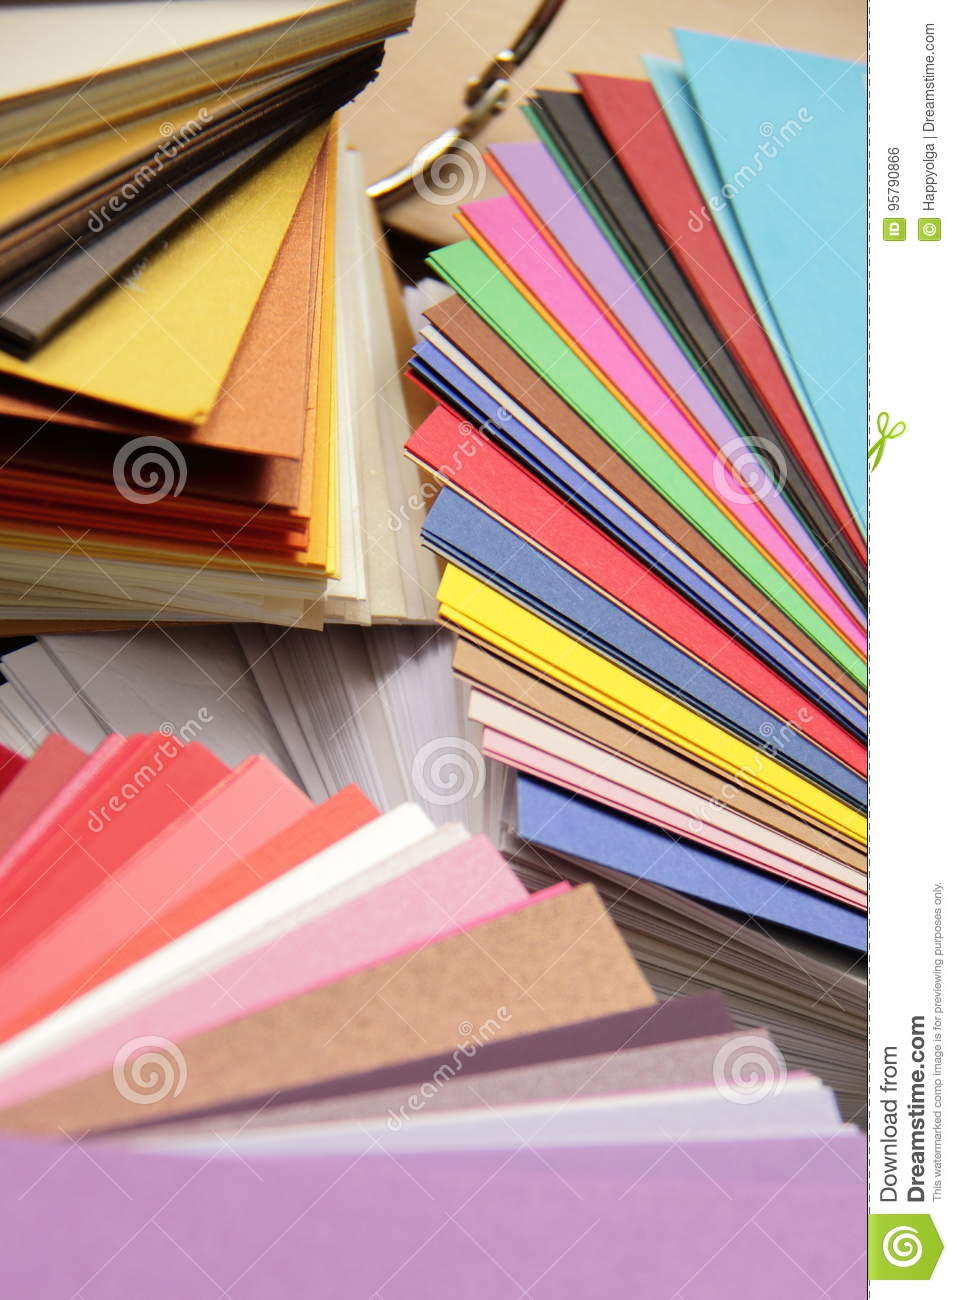 Paper Sampler Stock Photo Image Of Book Background 95790866